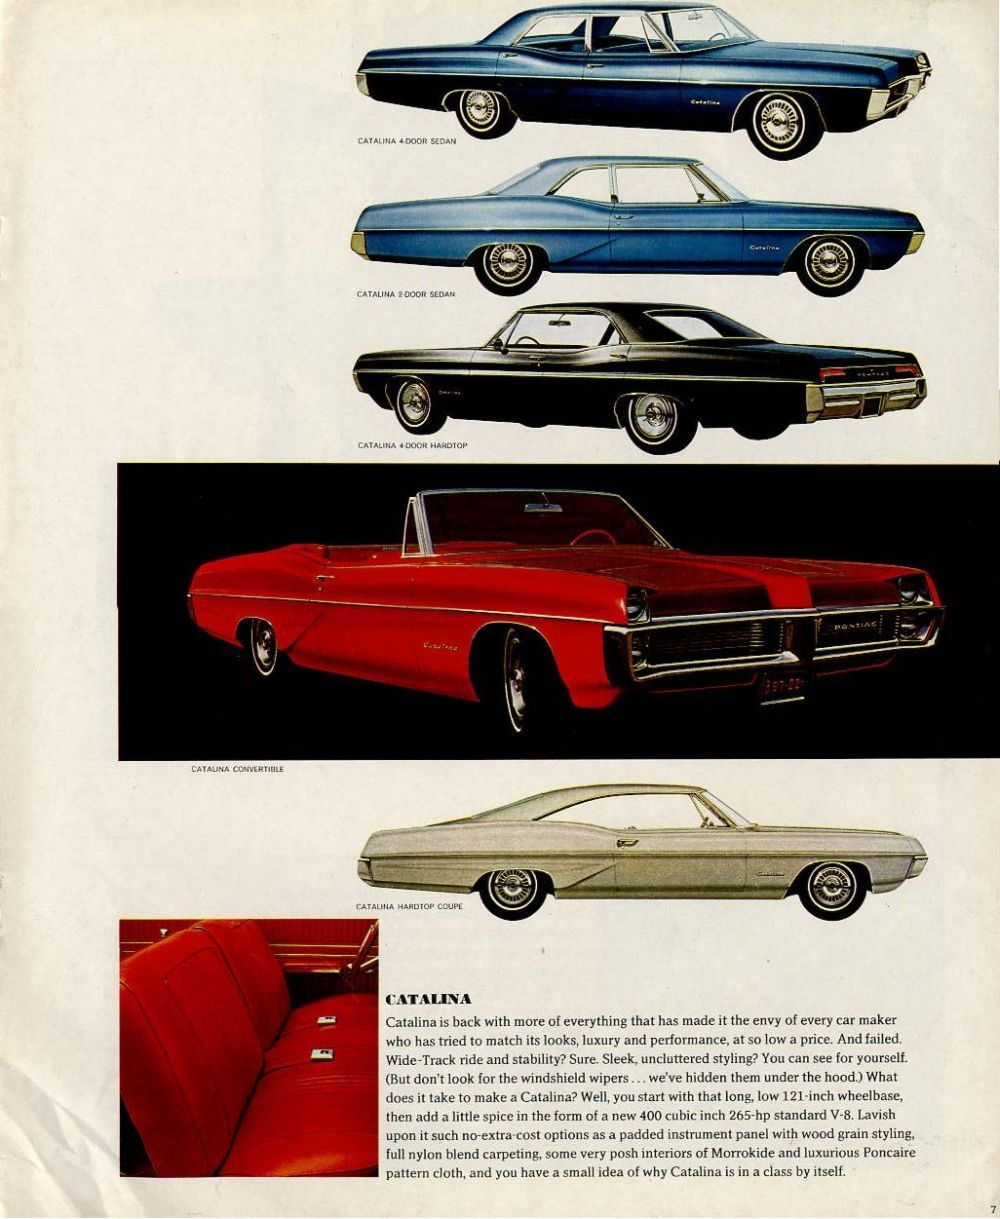 1967 Pontiac Catalina Convertible - the car of my childhood will one day be my summertime cruiser